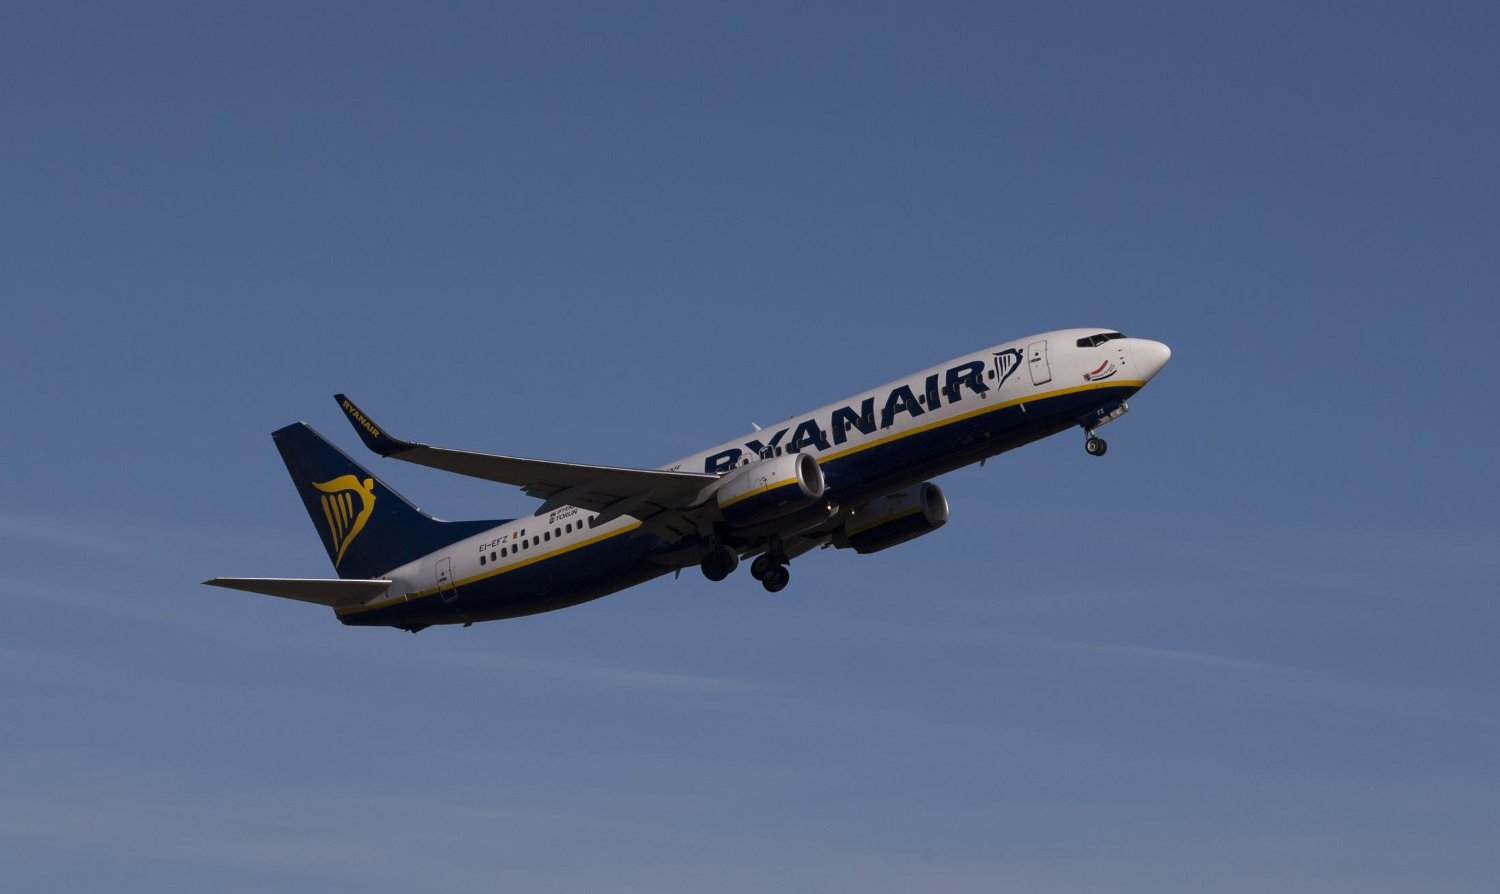 Et Ryanair-fly på vei til Stansted flyplass, London.